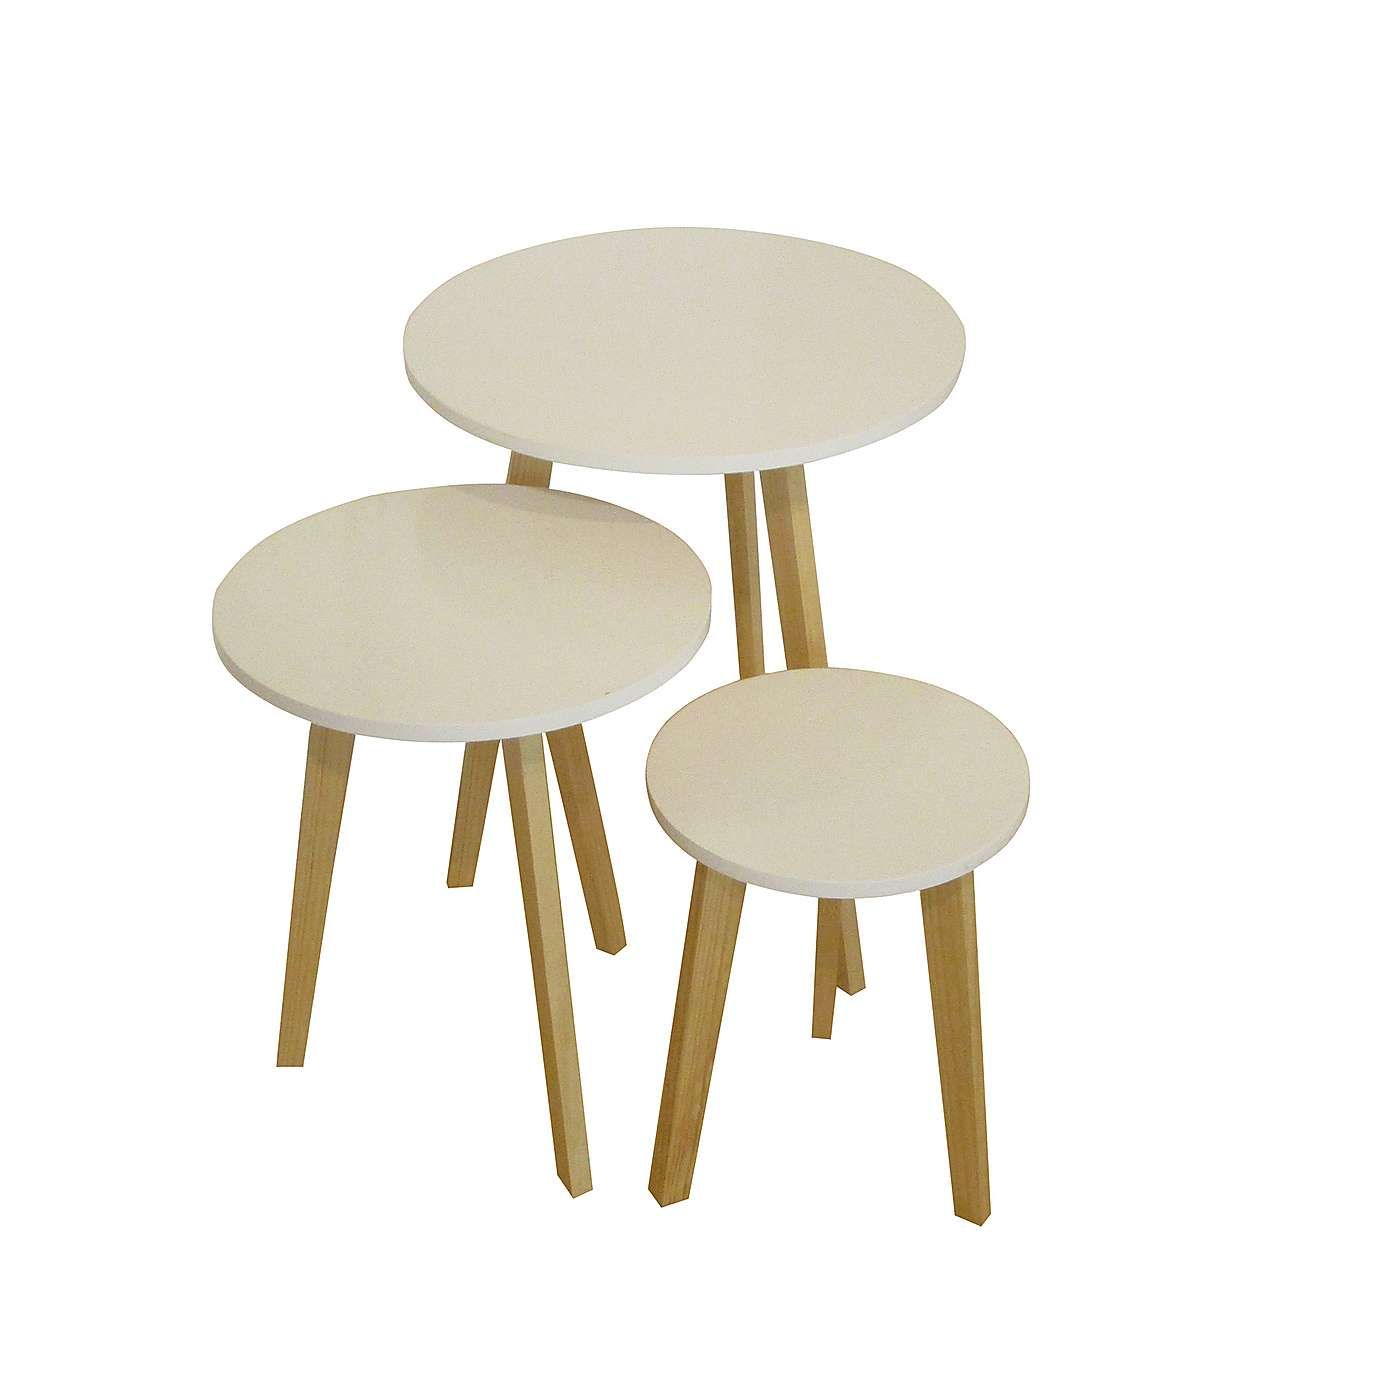 Astrid Set Of 3 Tables Dunelm 49 Table Coffee Table Round Table Top [ 1389 x 1389 Pixel ]